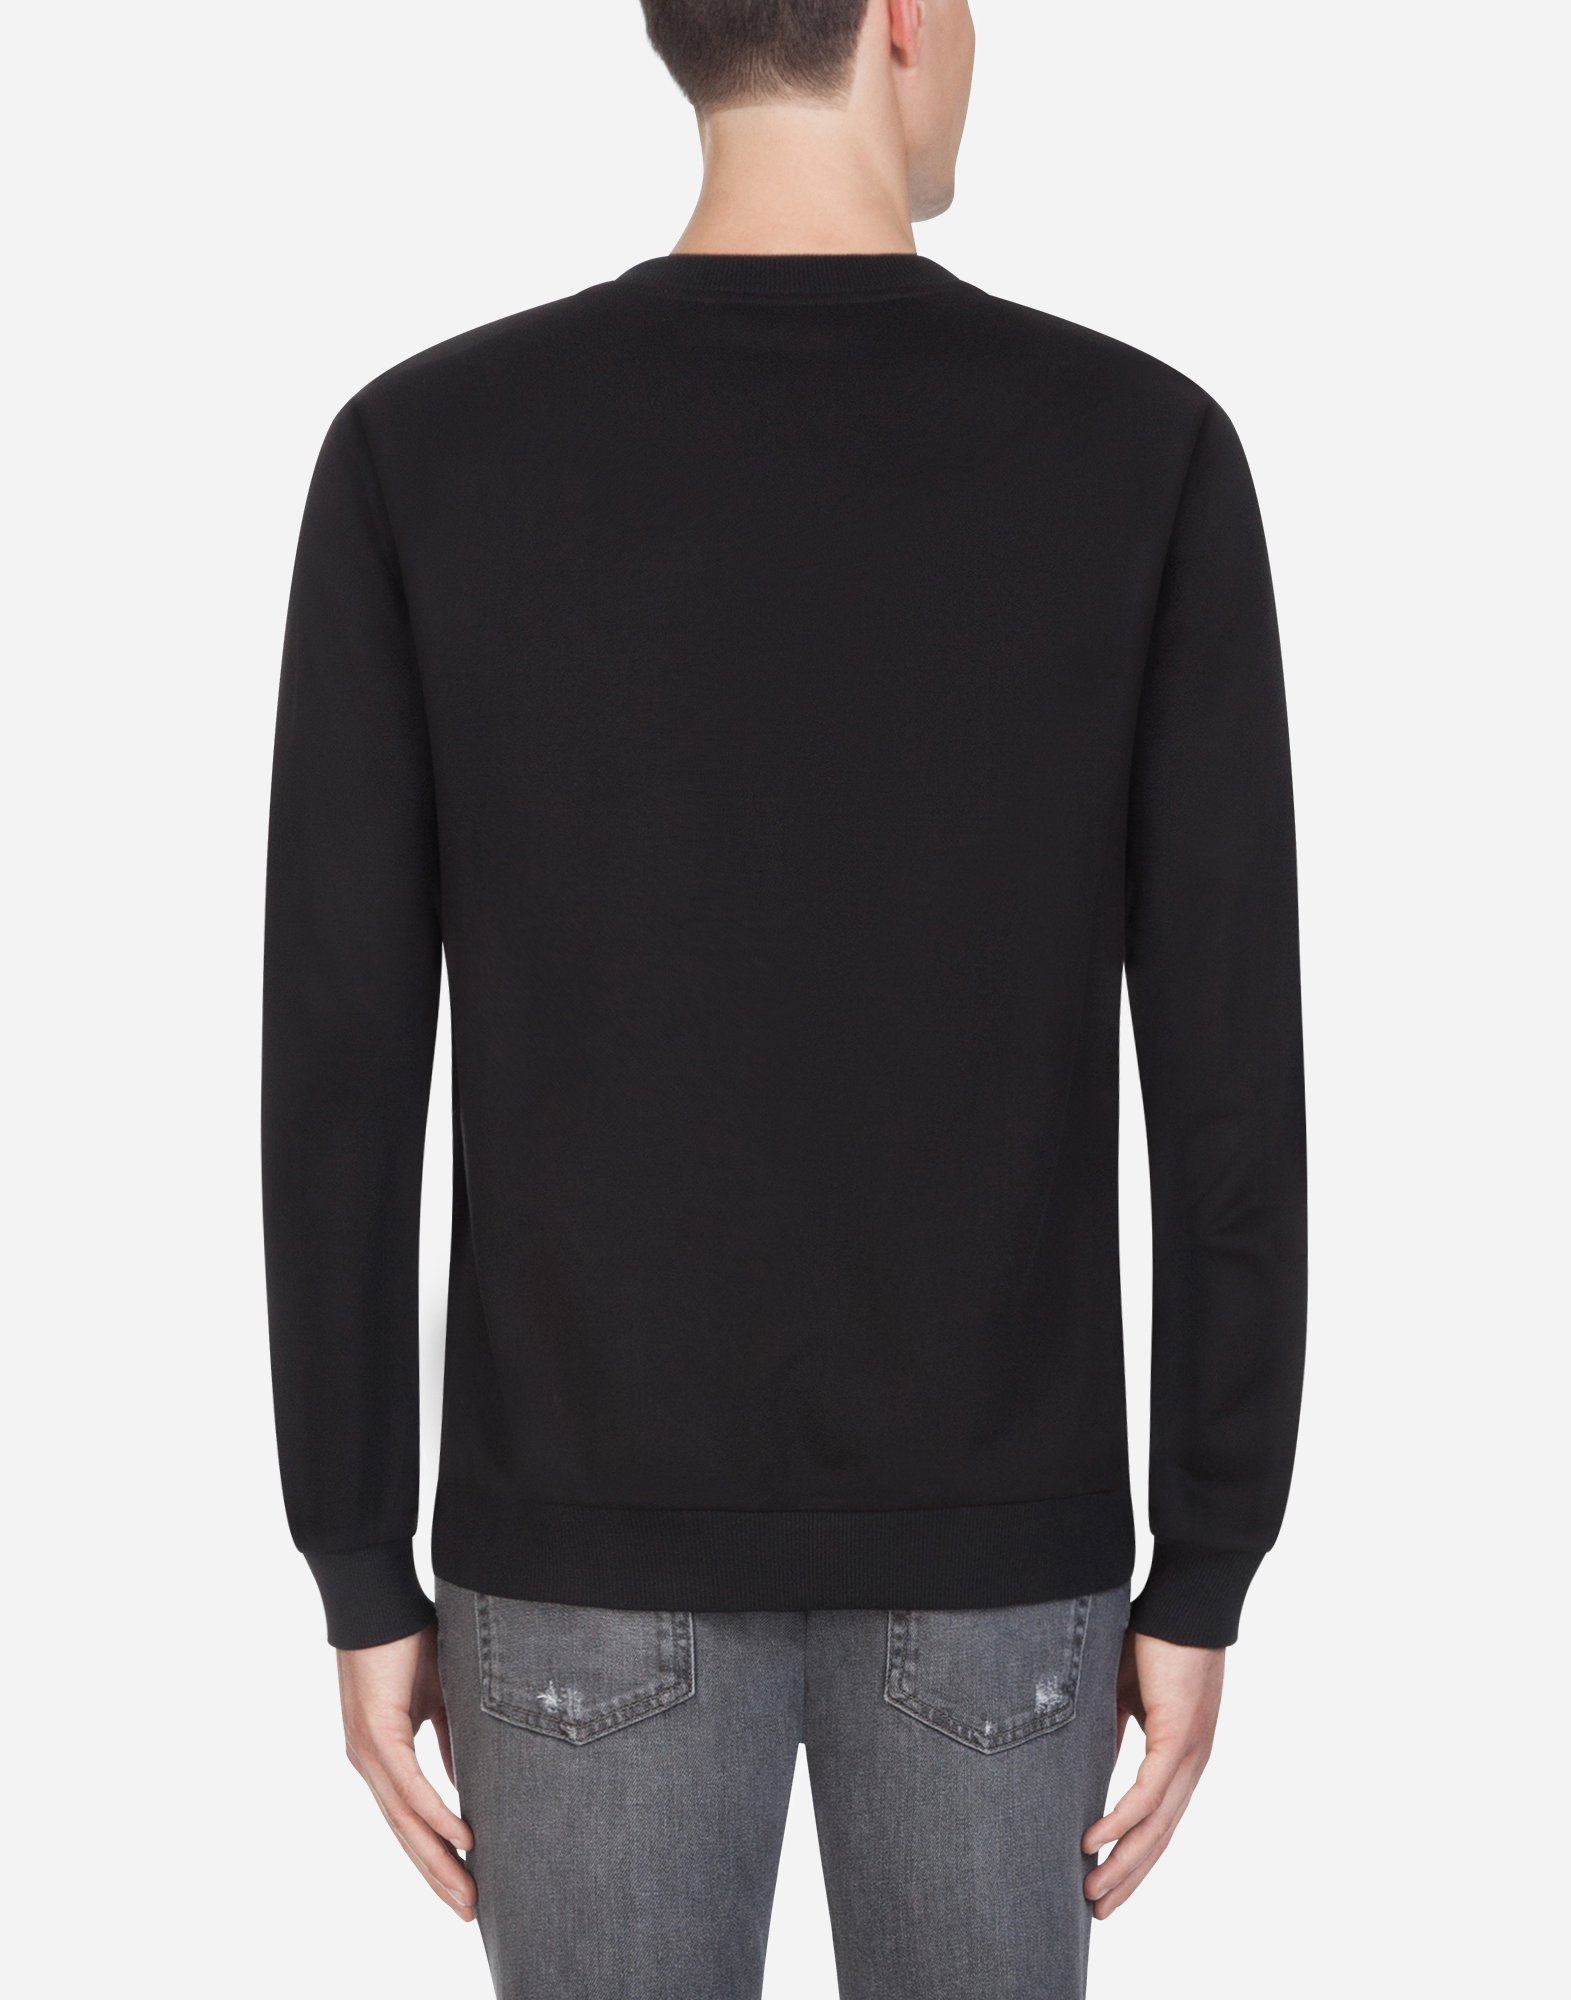 Dolce & Gabbana COTTON SWEATSHIRT WITH EMBROIDERY